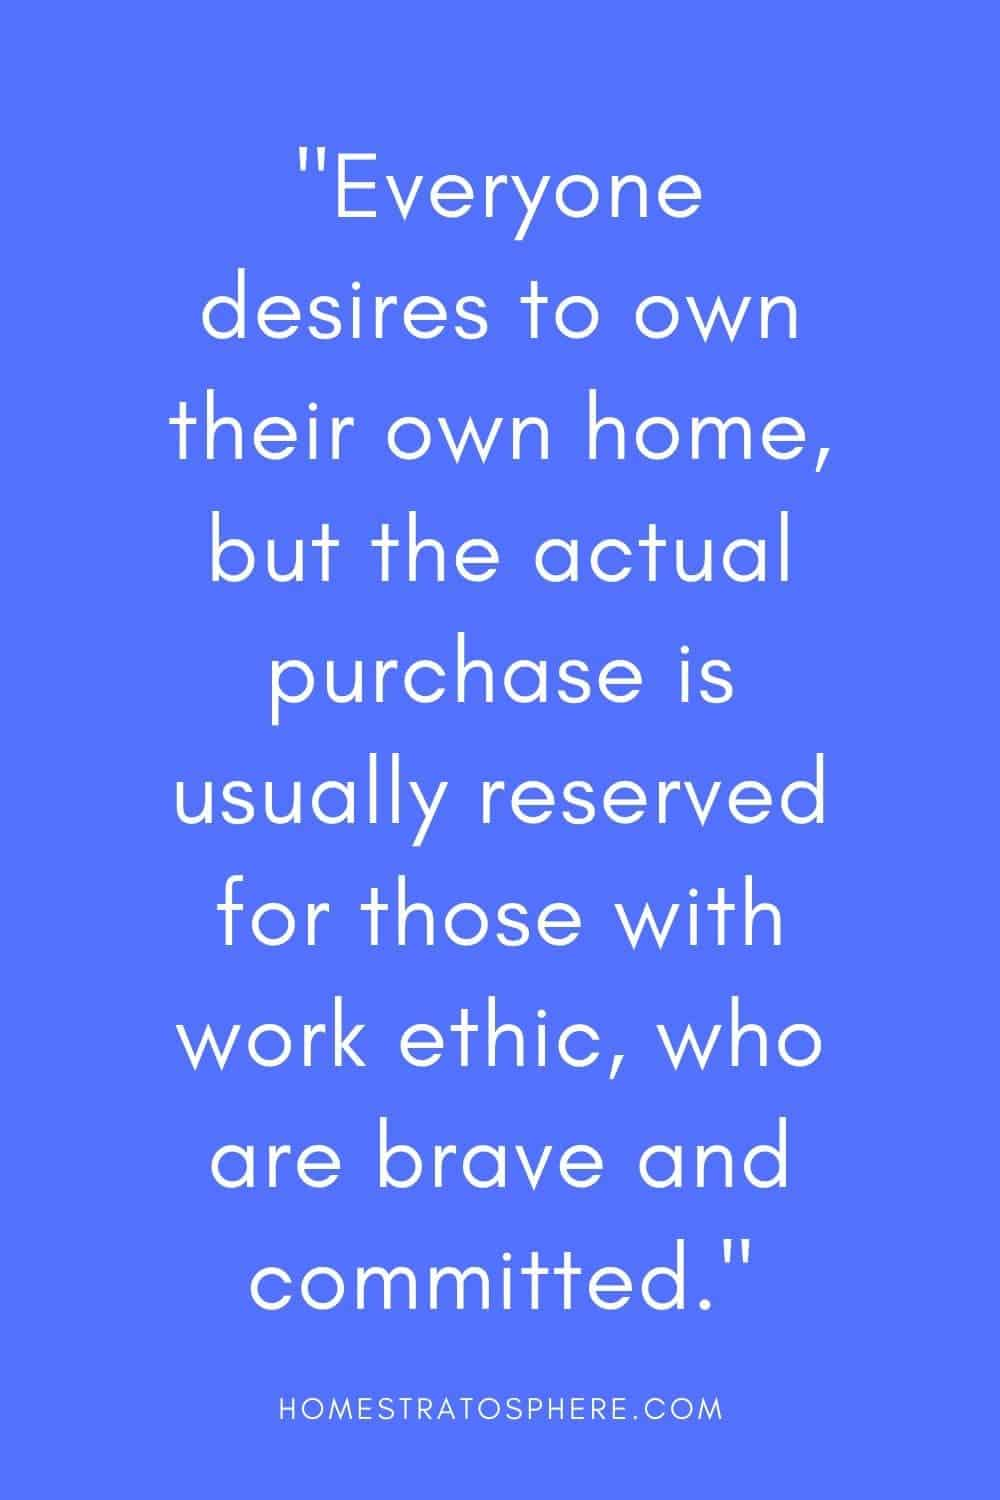 """Everyone desires to own their own home, but the actual purchase is usually reserved for those with work ethic, who are brave and committed."""